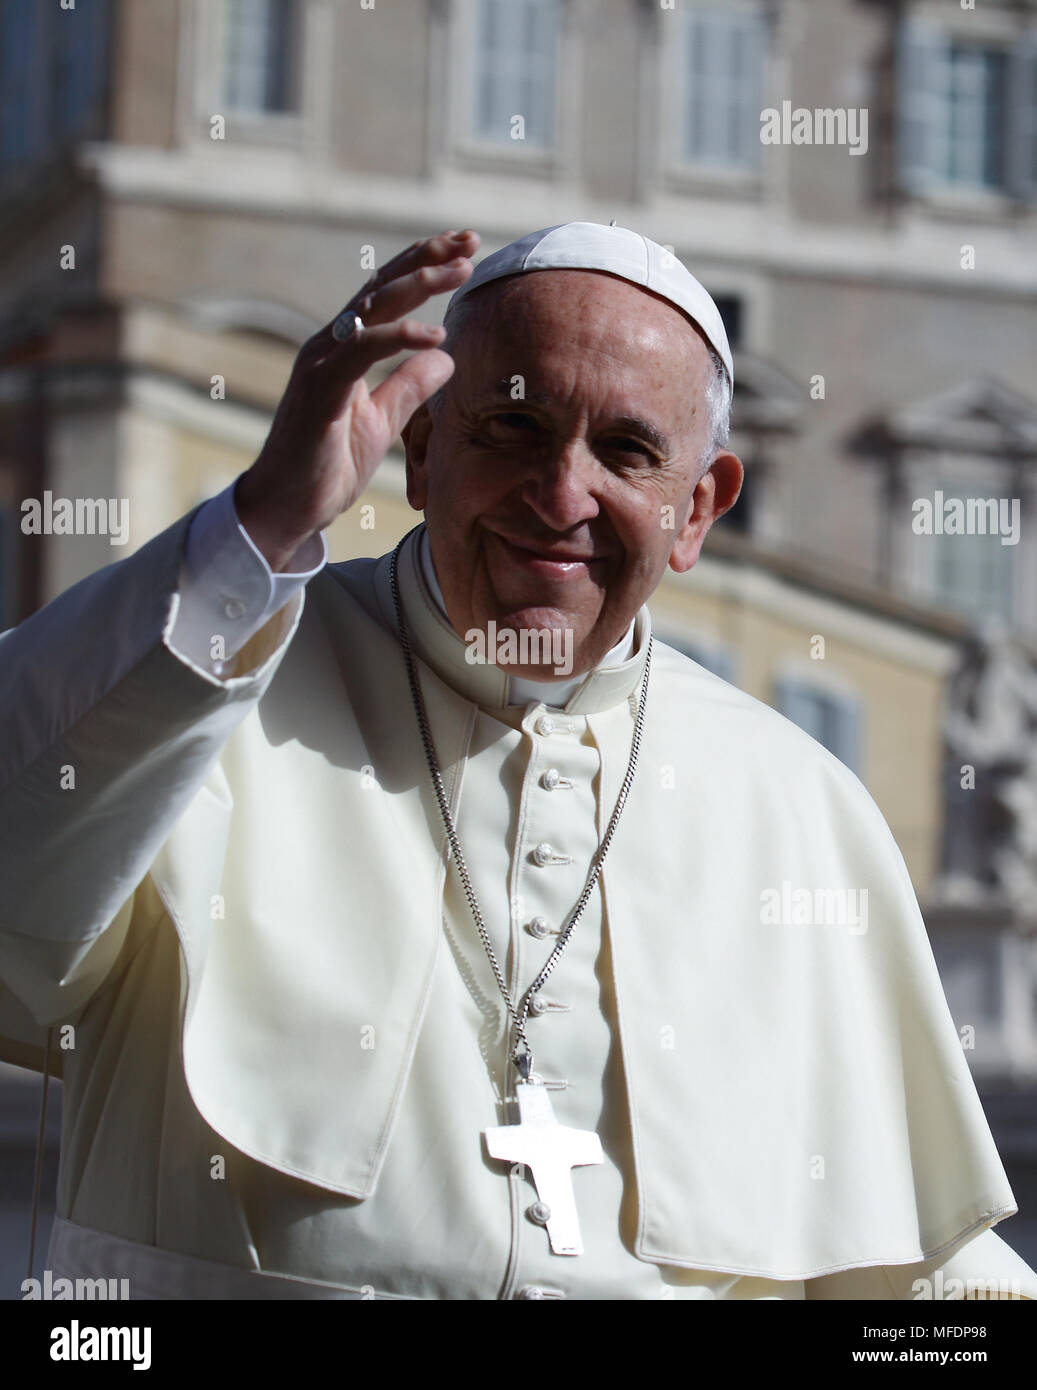 9241a0710342 Pope Francis Smiling Stock Photos   Pope Francis Smiling Stock ...